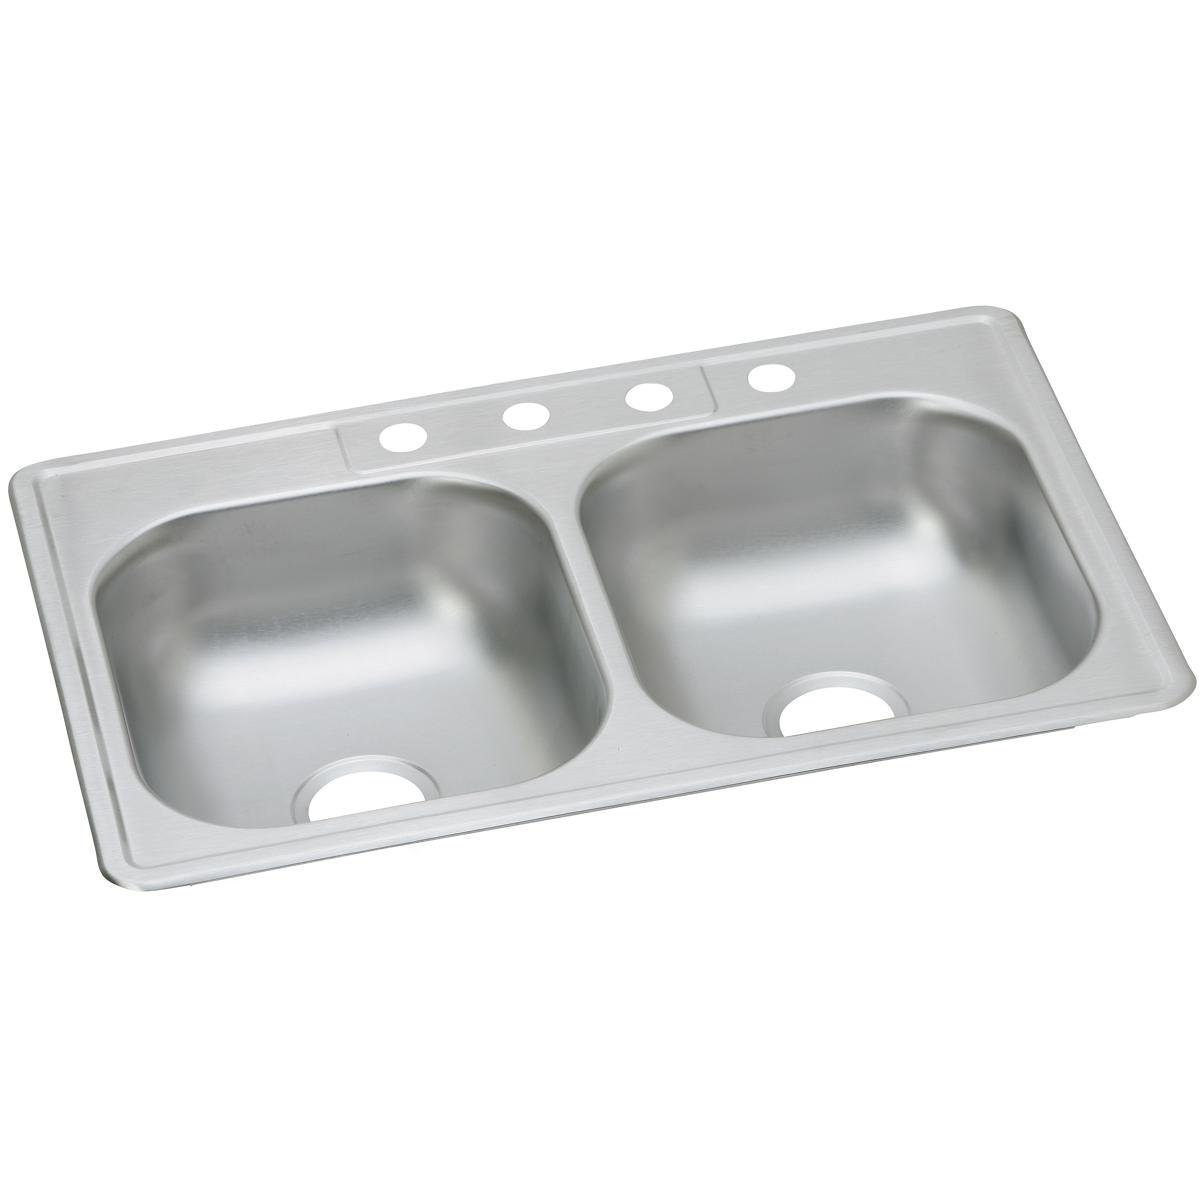 Dayton D233223 Equal Double Bowl Top Mount Stainless Steel Sink by Elkay